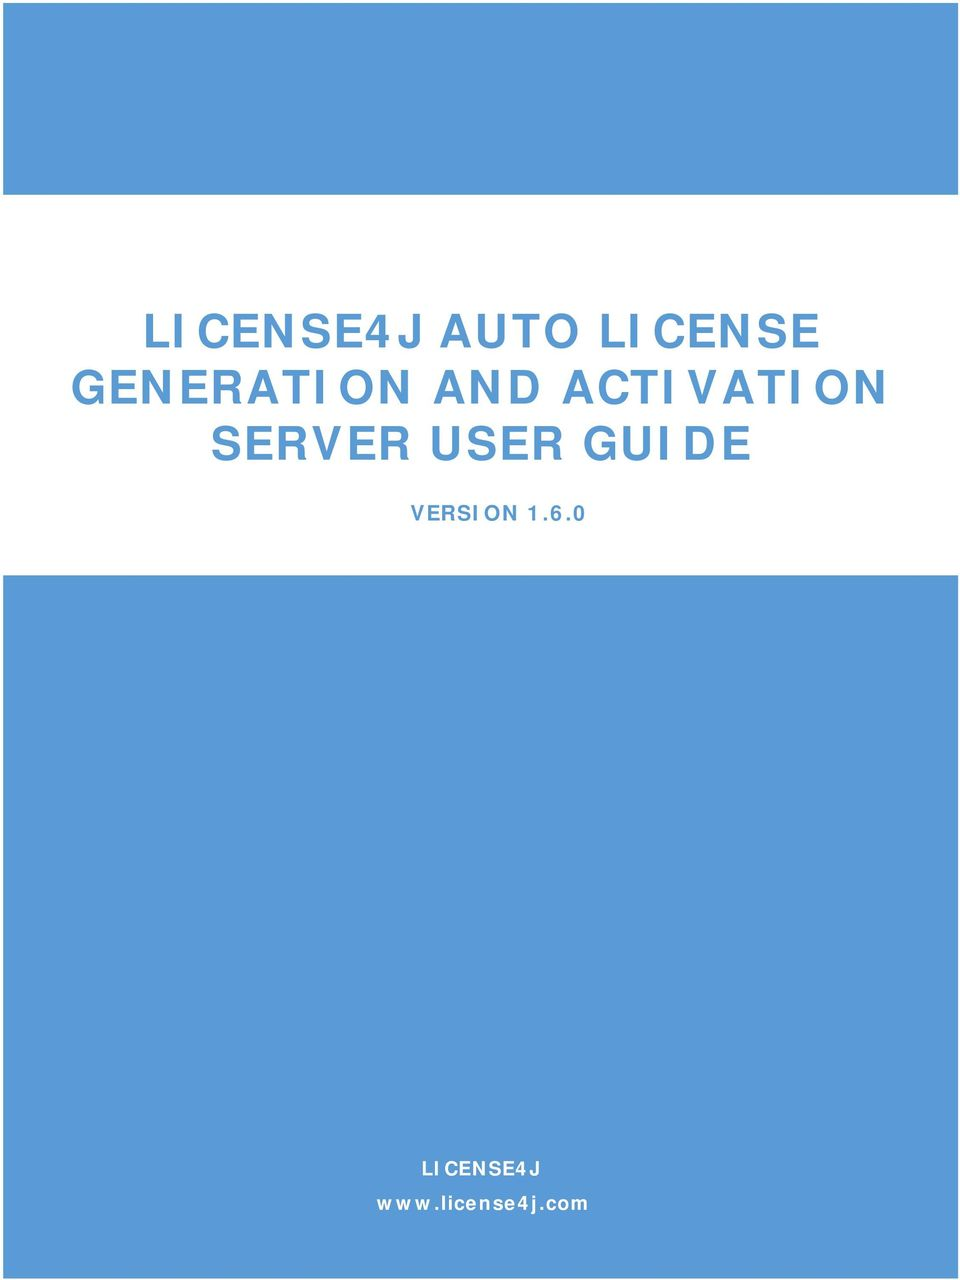 LICENSE4J AUTO LICENSE GENERATION AND ACTIVATION SERVER USER GUIDE - PDF